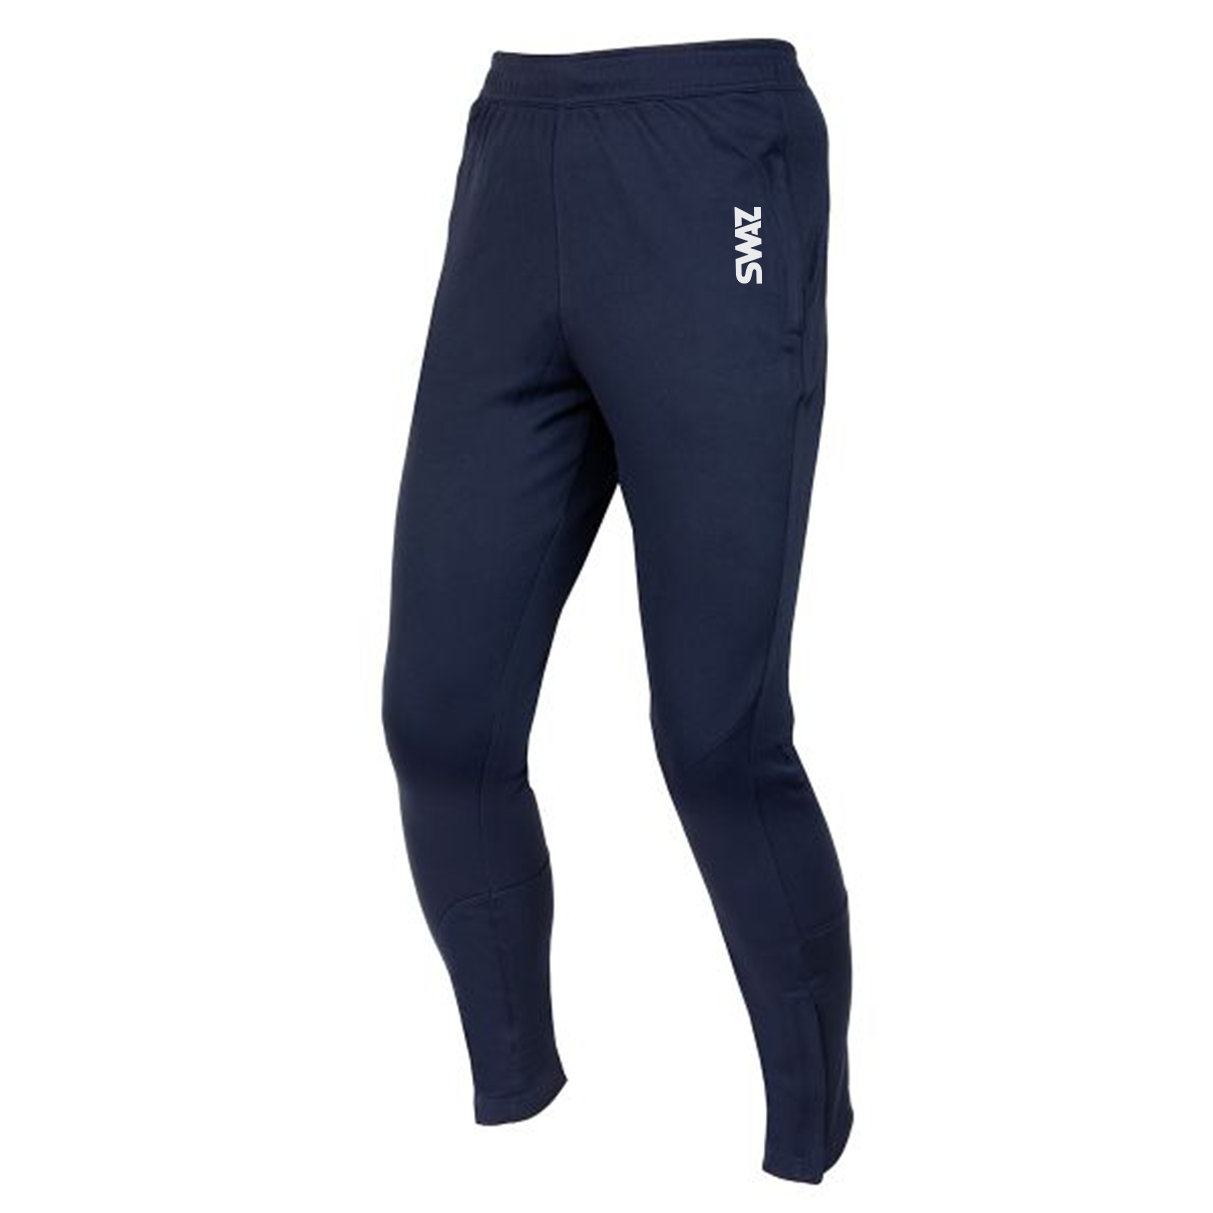 SWAZ Exmouth Town Adult Skinny Pants – Navy